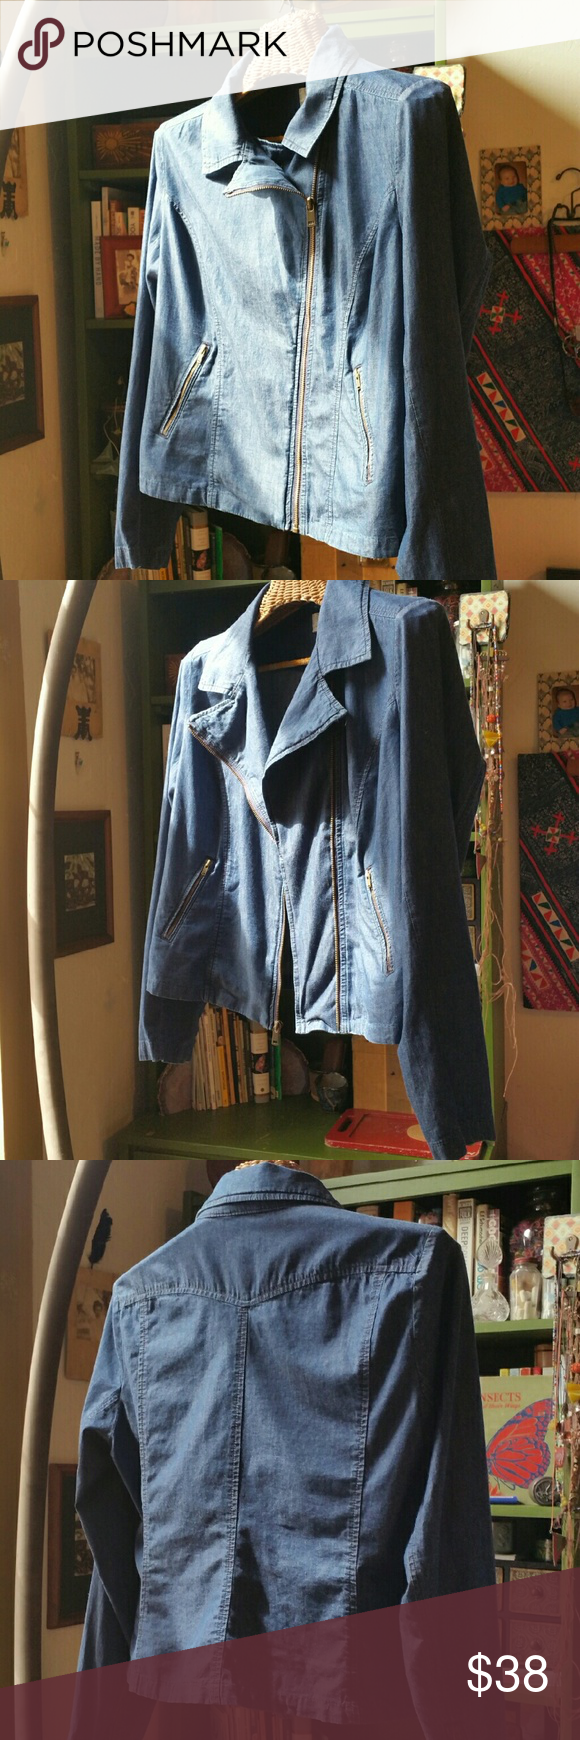 """Levi's deep chambray motorcycle jacket Levi's size large deep chambray/lightweight denim motorcycle jacket  Excellent slant front pocket and sleeve zippers Full asymmetrical front zip 100% cotton Bust 42"""" Total length 21.5""""  **bundle and save 20%!** Levi's Jackets & Coats"""